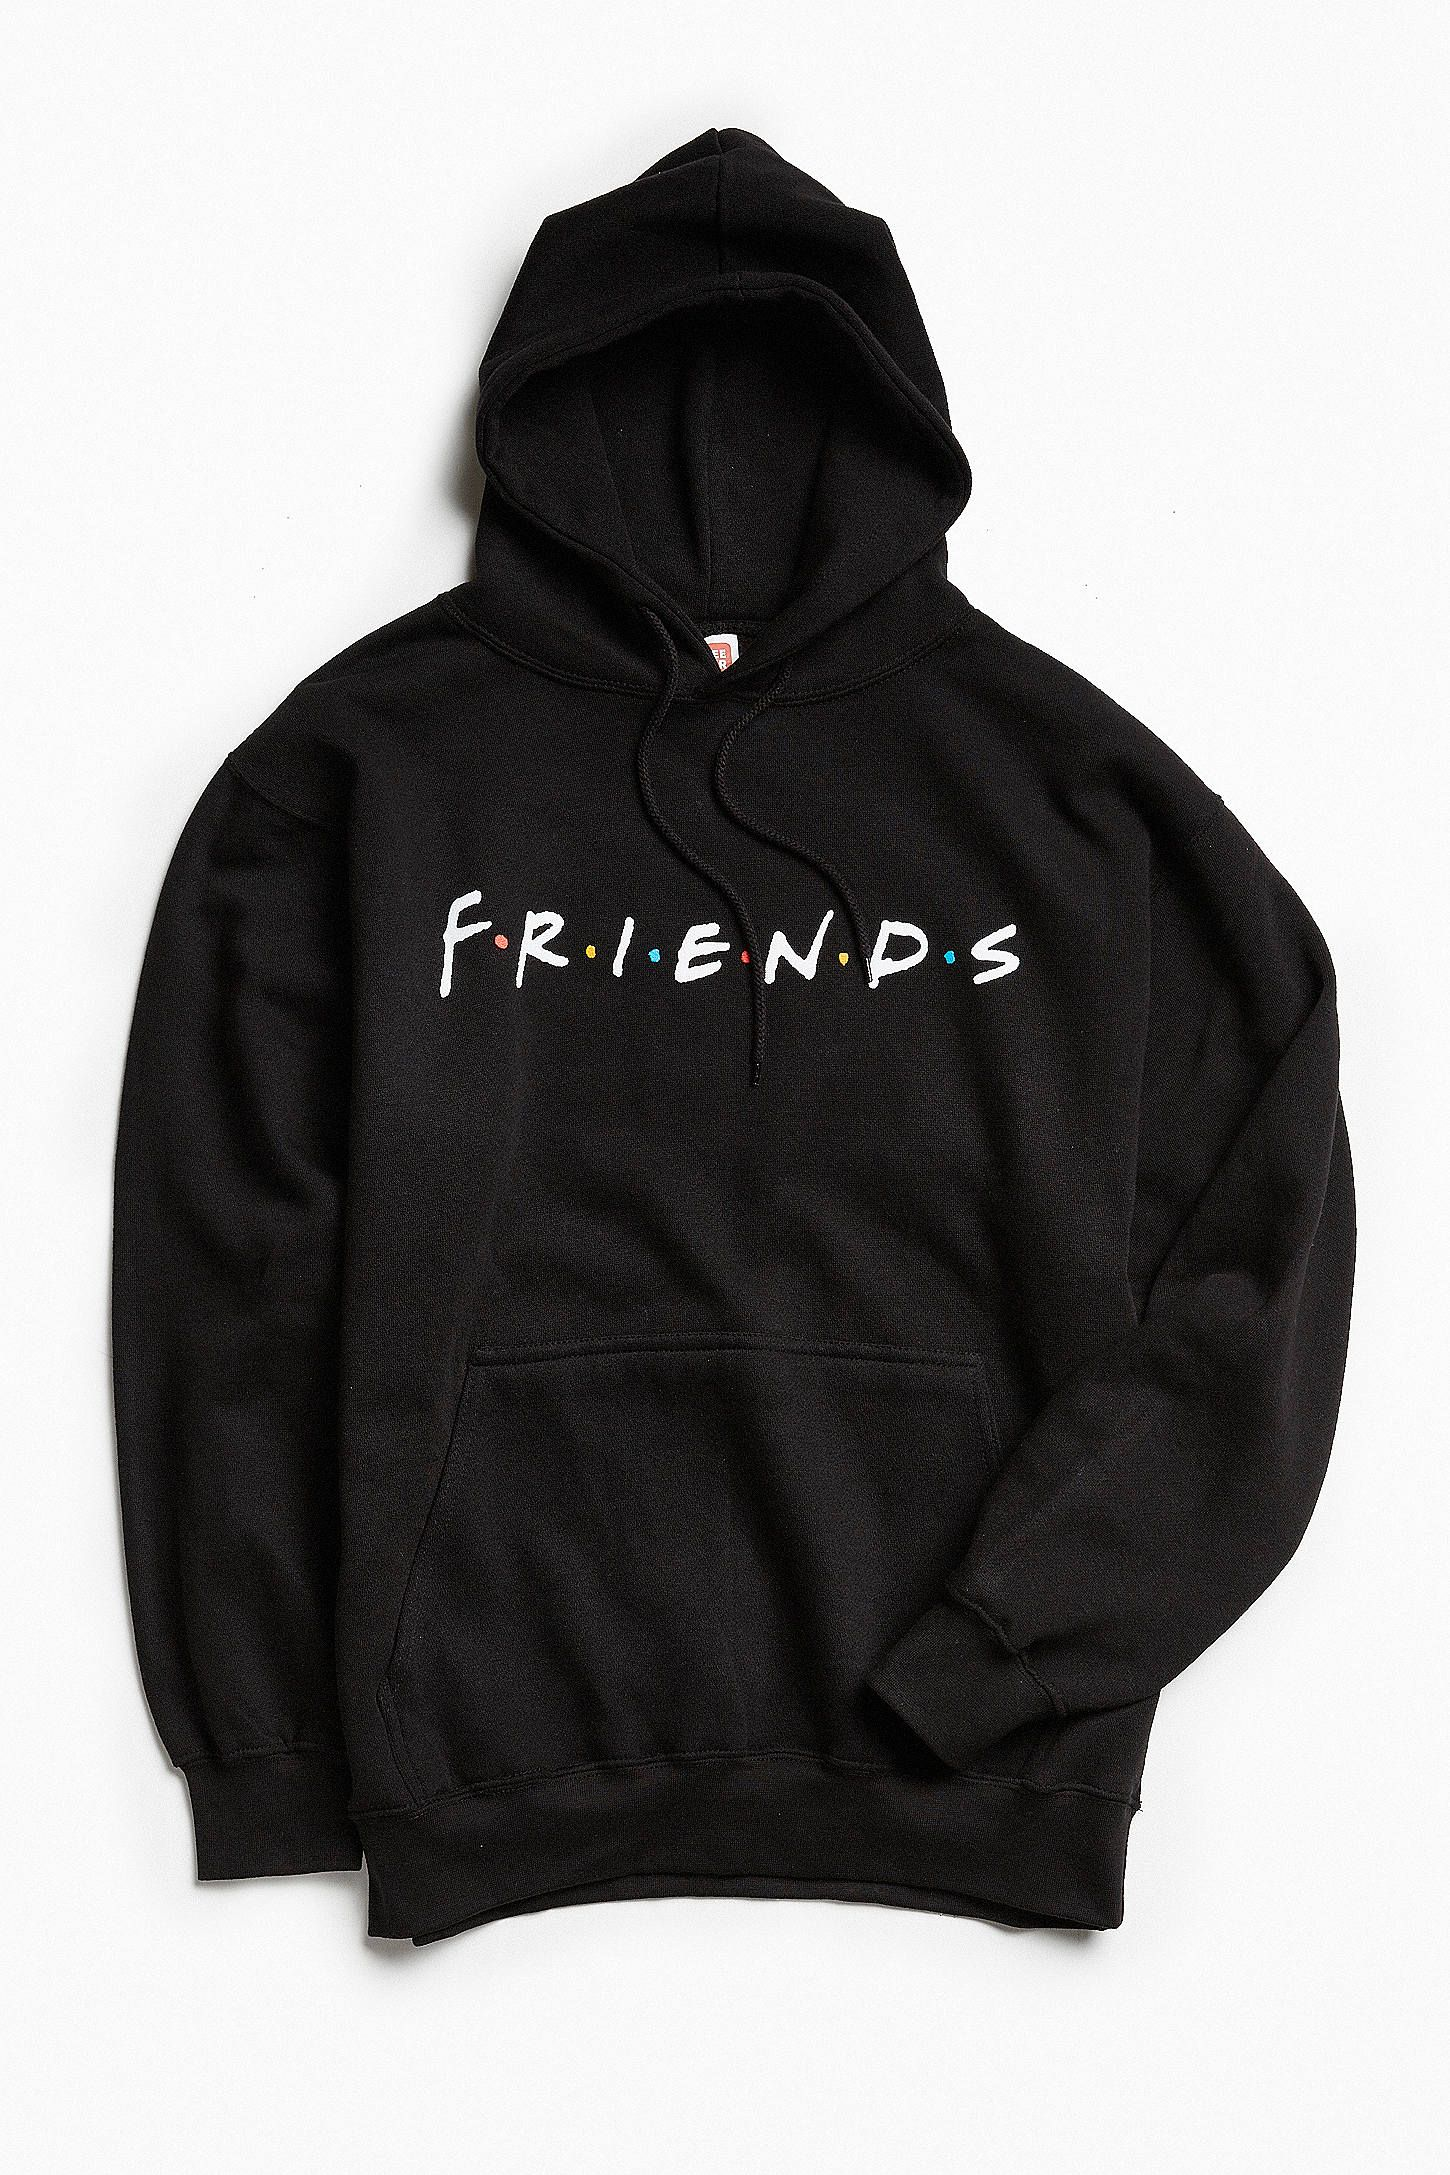 a6591b6bd Shop Friends Hoodie Sweatshirt at Urban Outfitters today. We carry all the  latest styles, colors and brands for you to choose from right here.